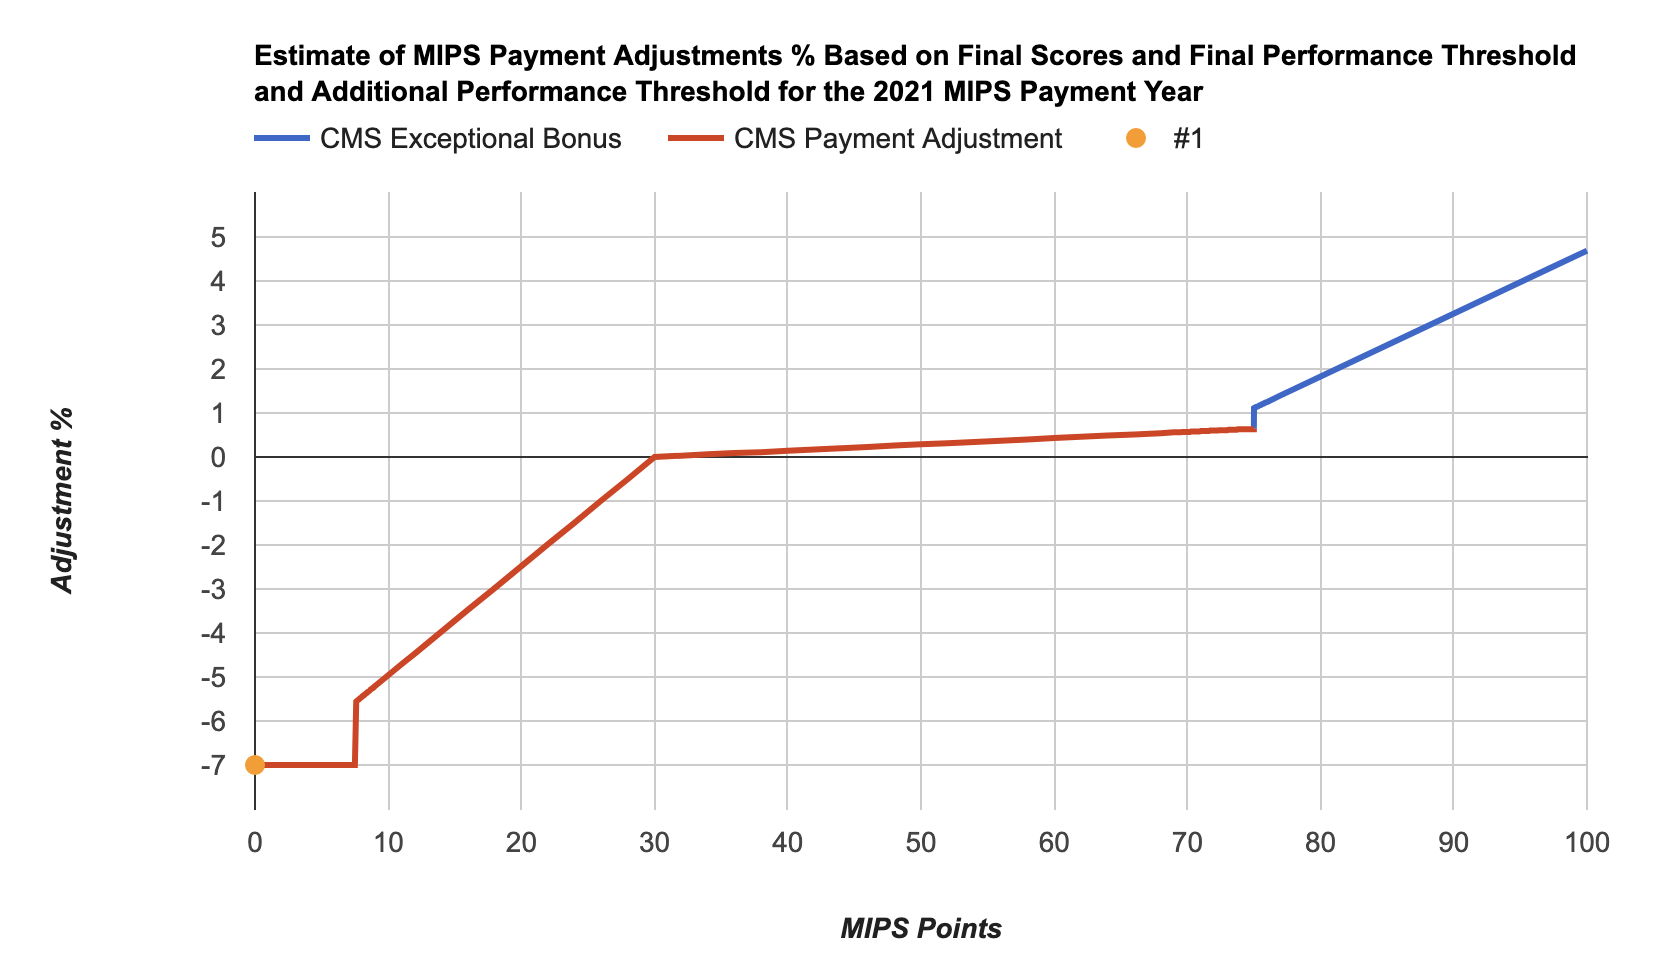 2021 MIPS Points adjustments